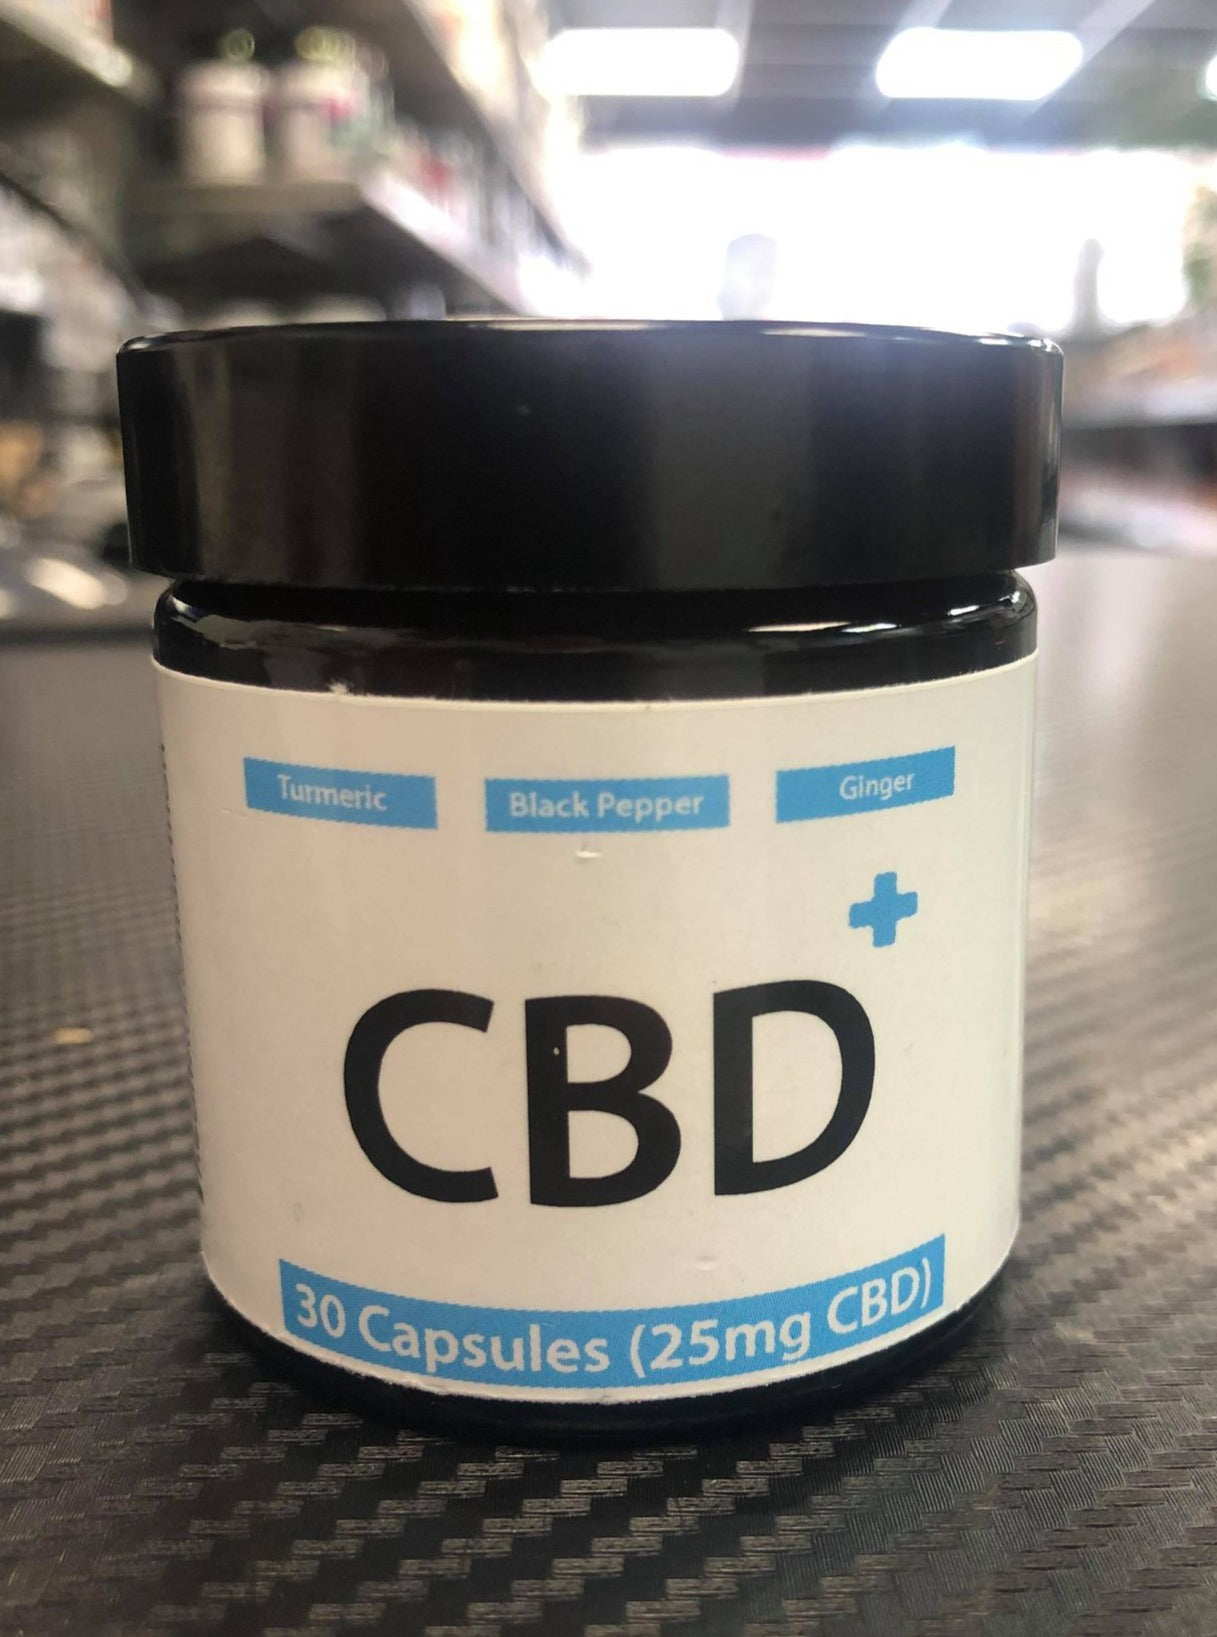 Positive Health & Nutrition - CBD Capsules 30 (25mg)